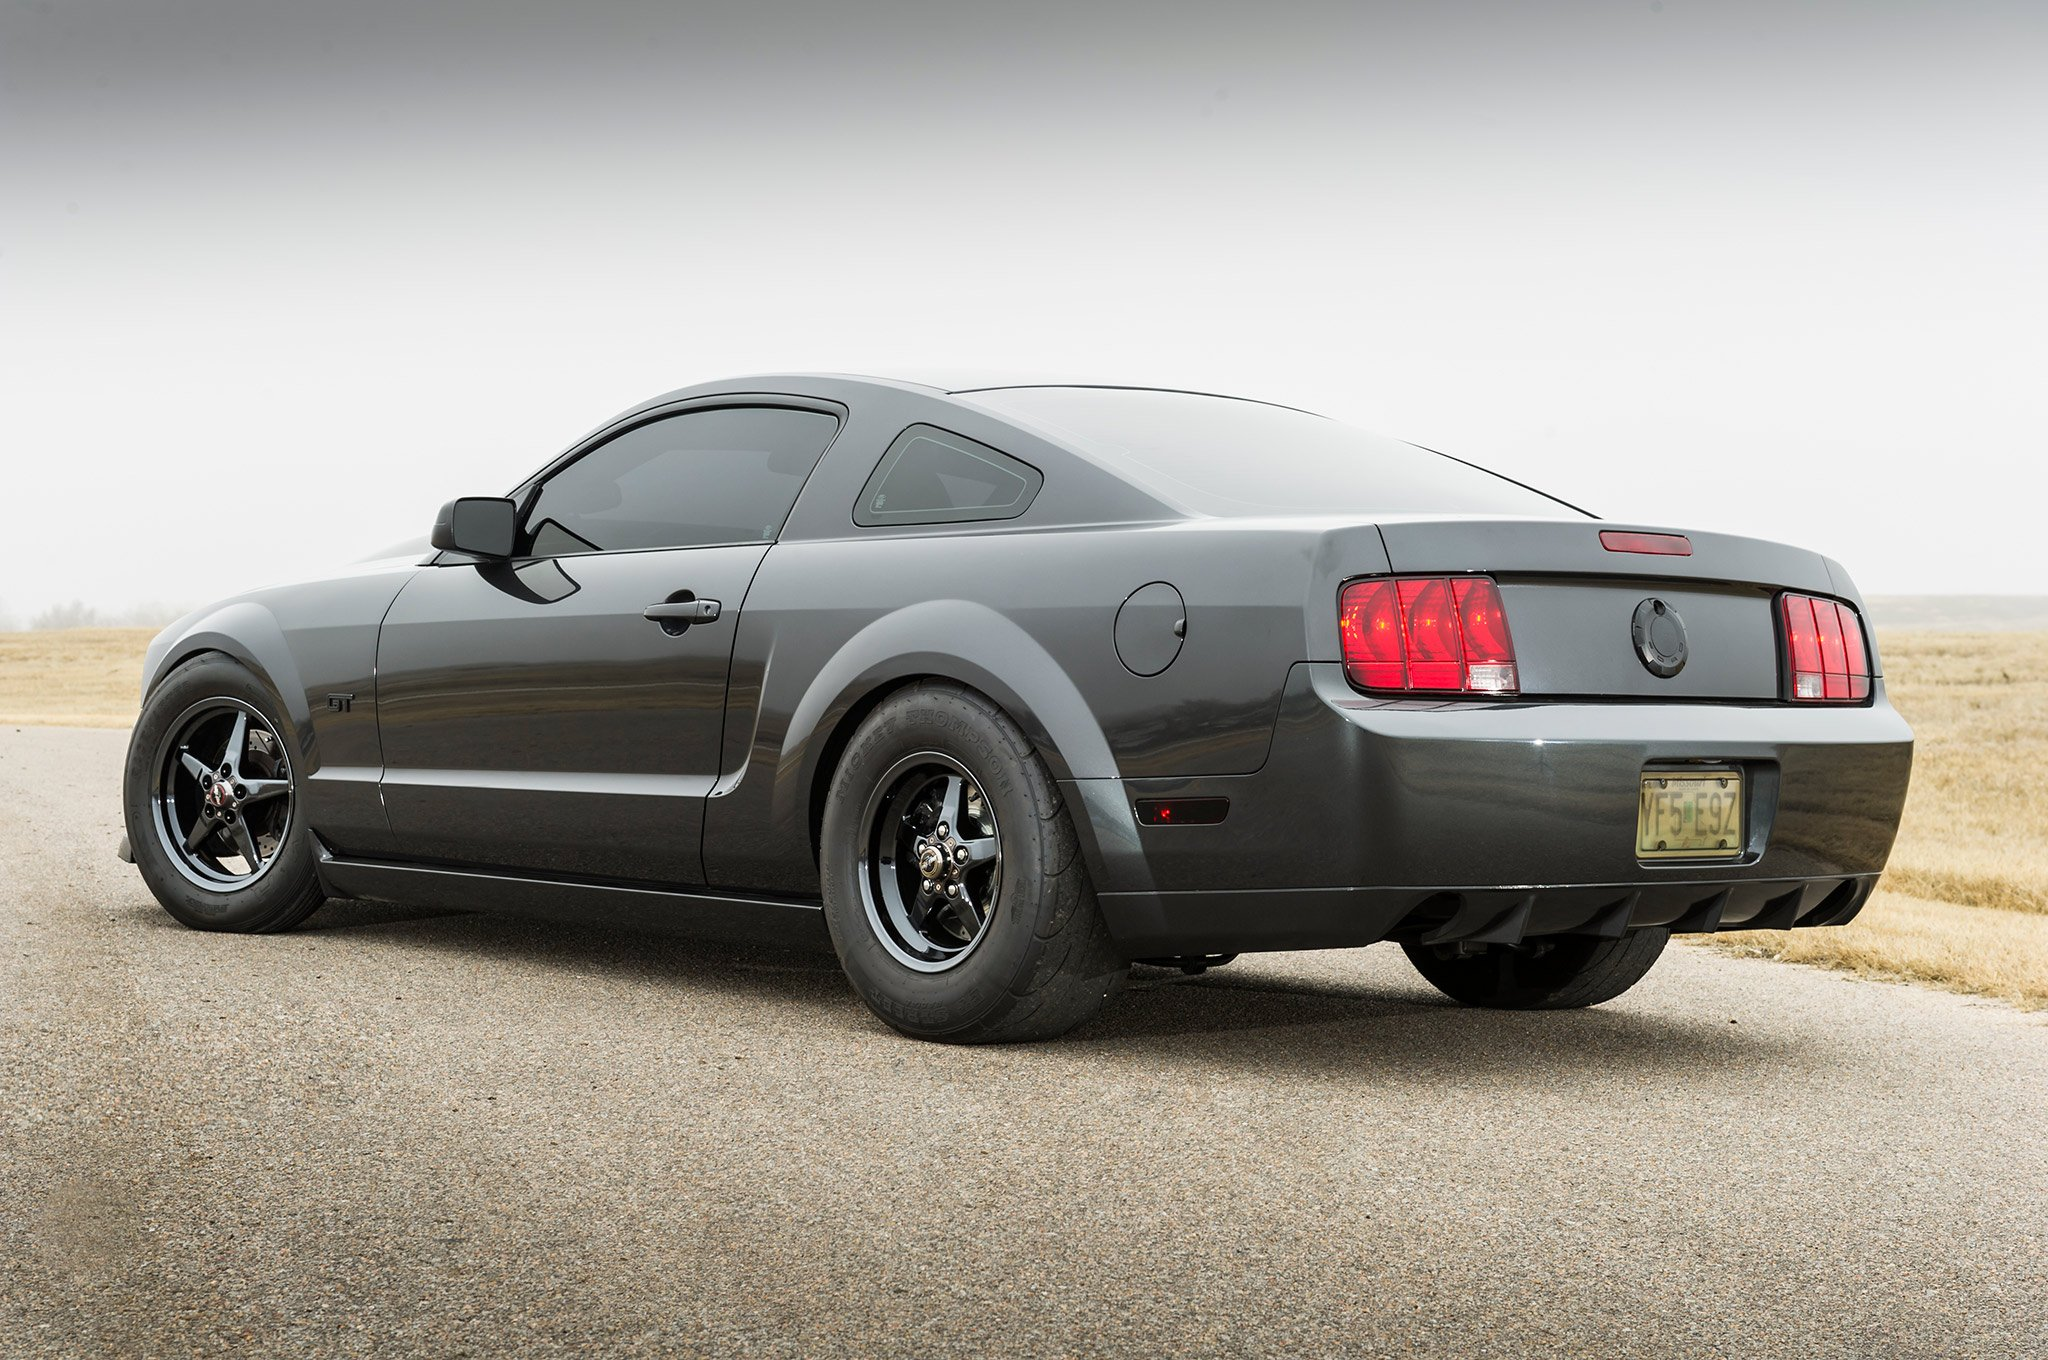 2015 Mustang Wheels >> 2007 Ford Mustang GT Pro Street Super Drag Muscle USA ...